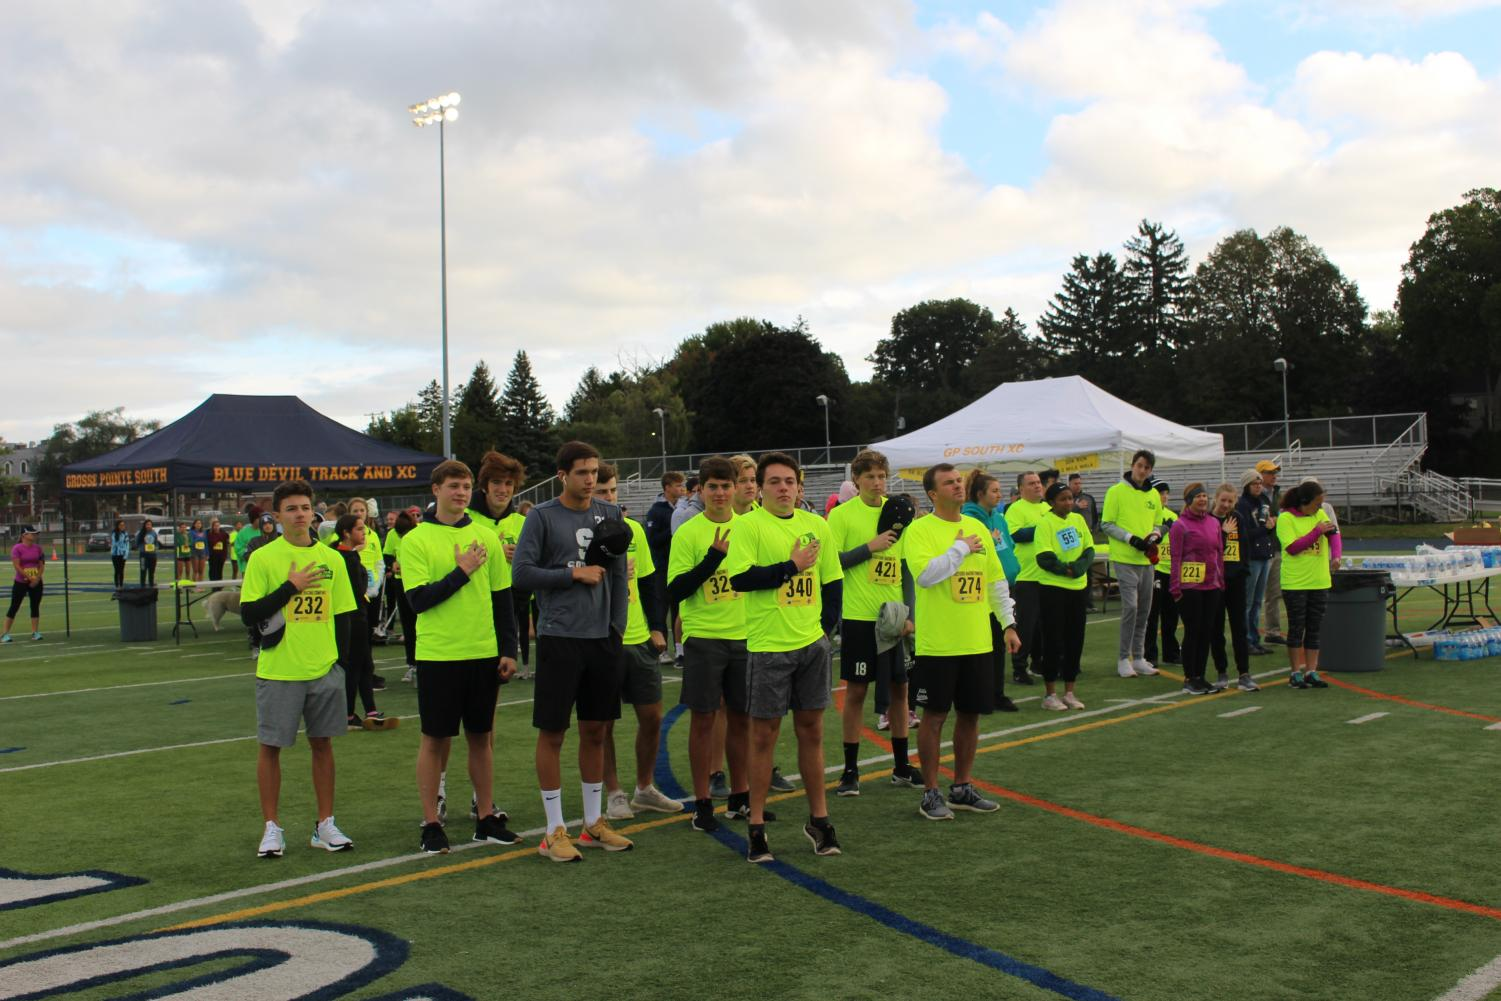 Representatives from almost every Varsity sports team at South came out on Saturday morning in support of GPS Athletics. Here, the Blue Devil Hockey team stands for the National Anthem moments before the start of the first race of the day: the 10k.